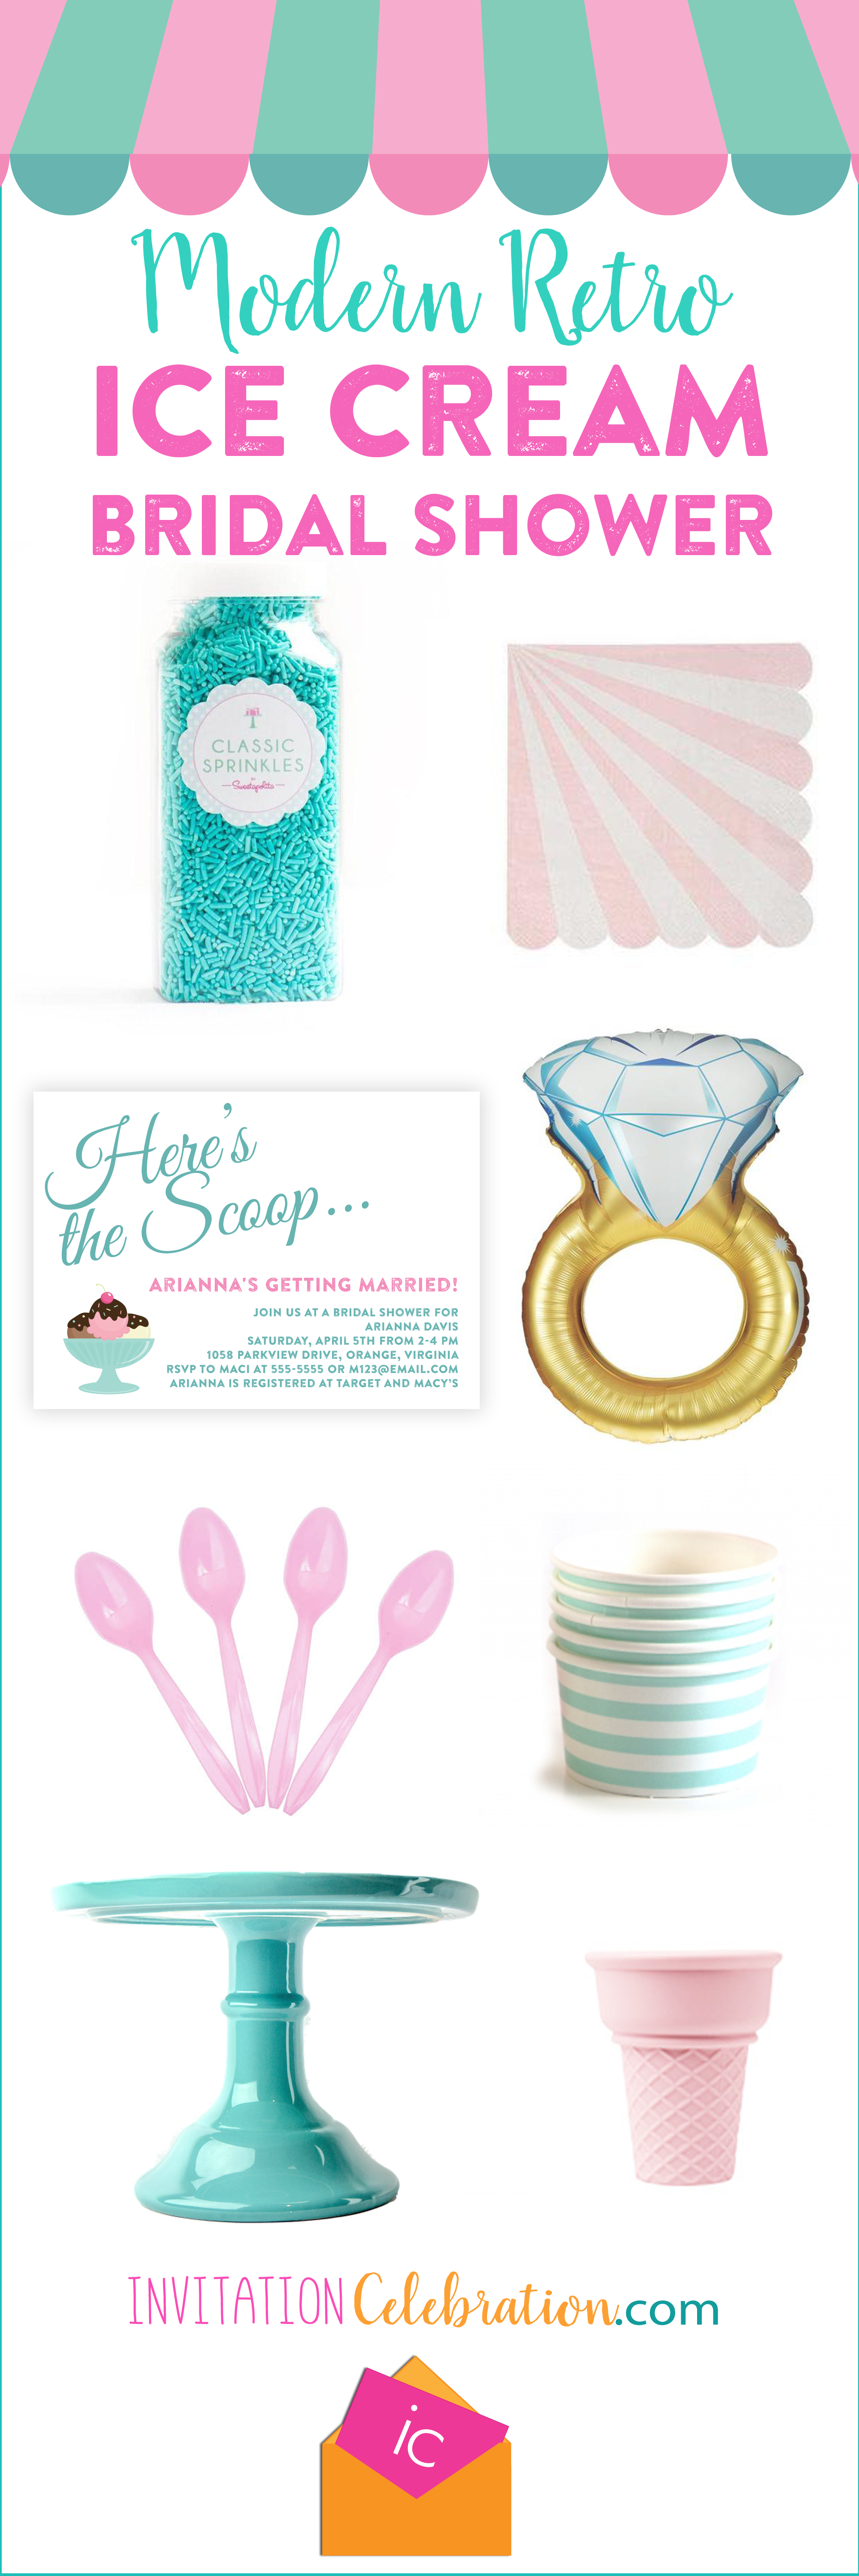 Must haves for any ice cream party!